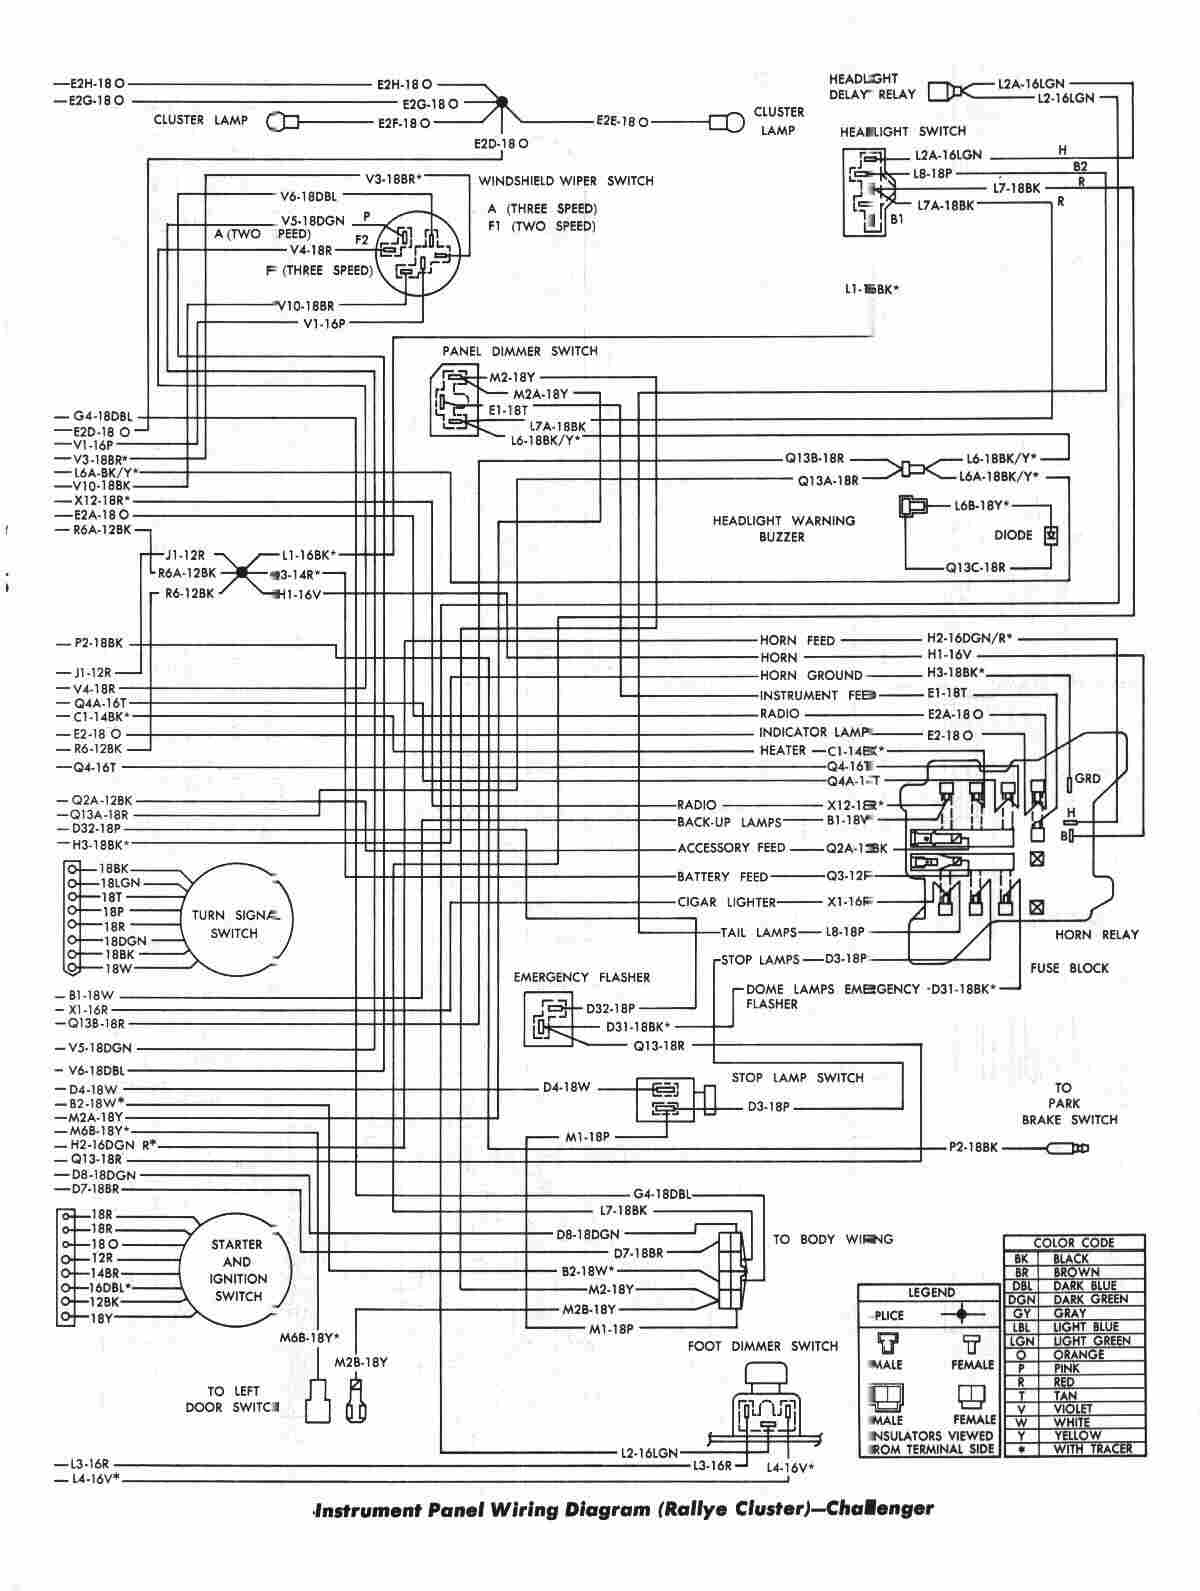 dodge challenger 1970 instrument panel wiring diagram. Black Bedroom Furniture Sets. Home Design Ideas